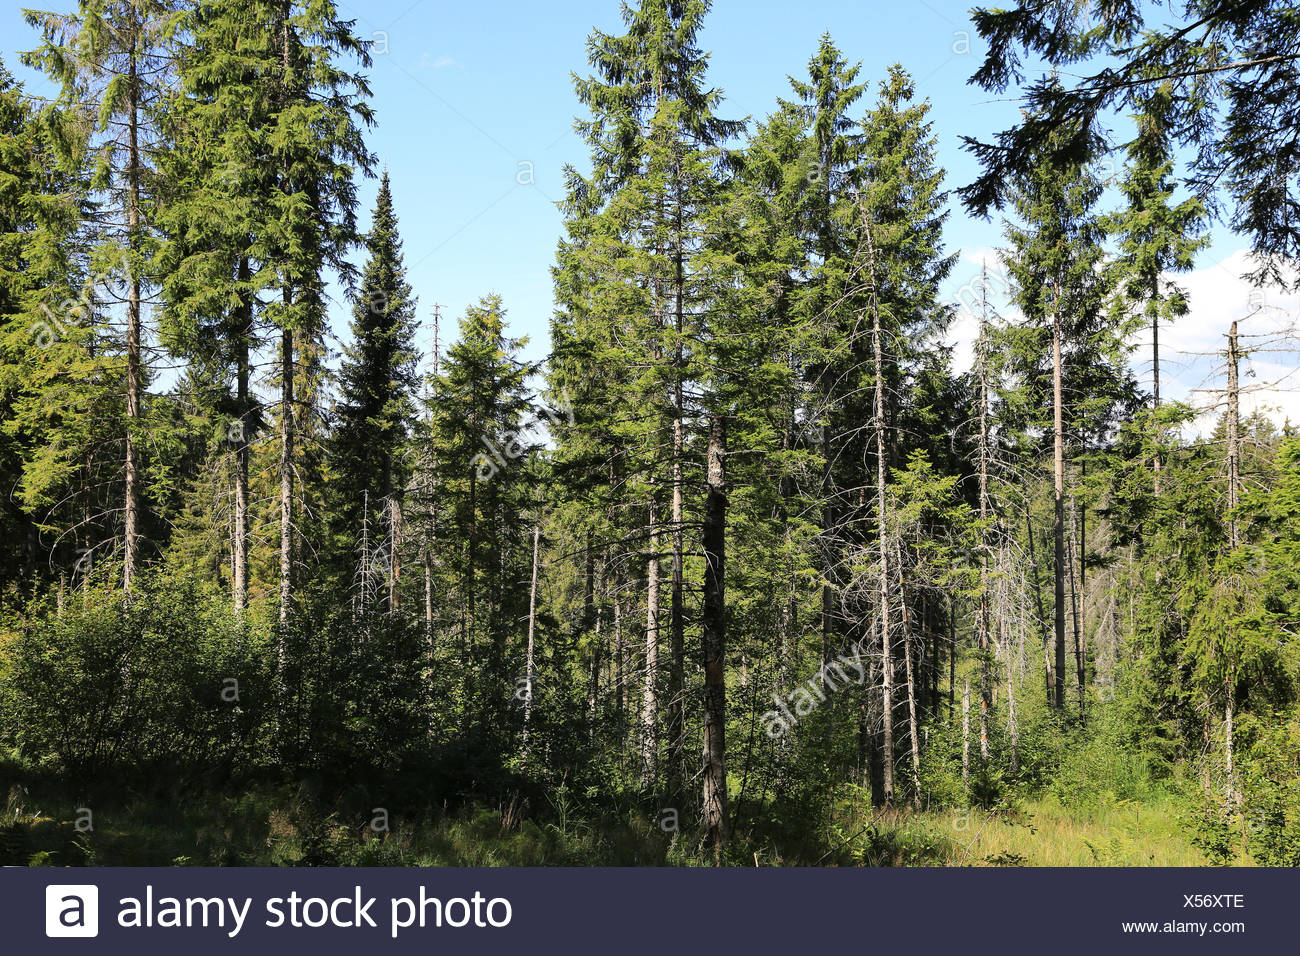 Fir trees and spruces in the Black Forest - Stock Image